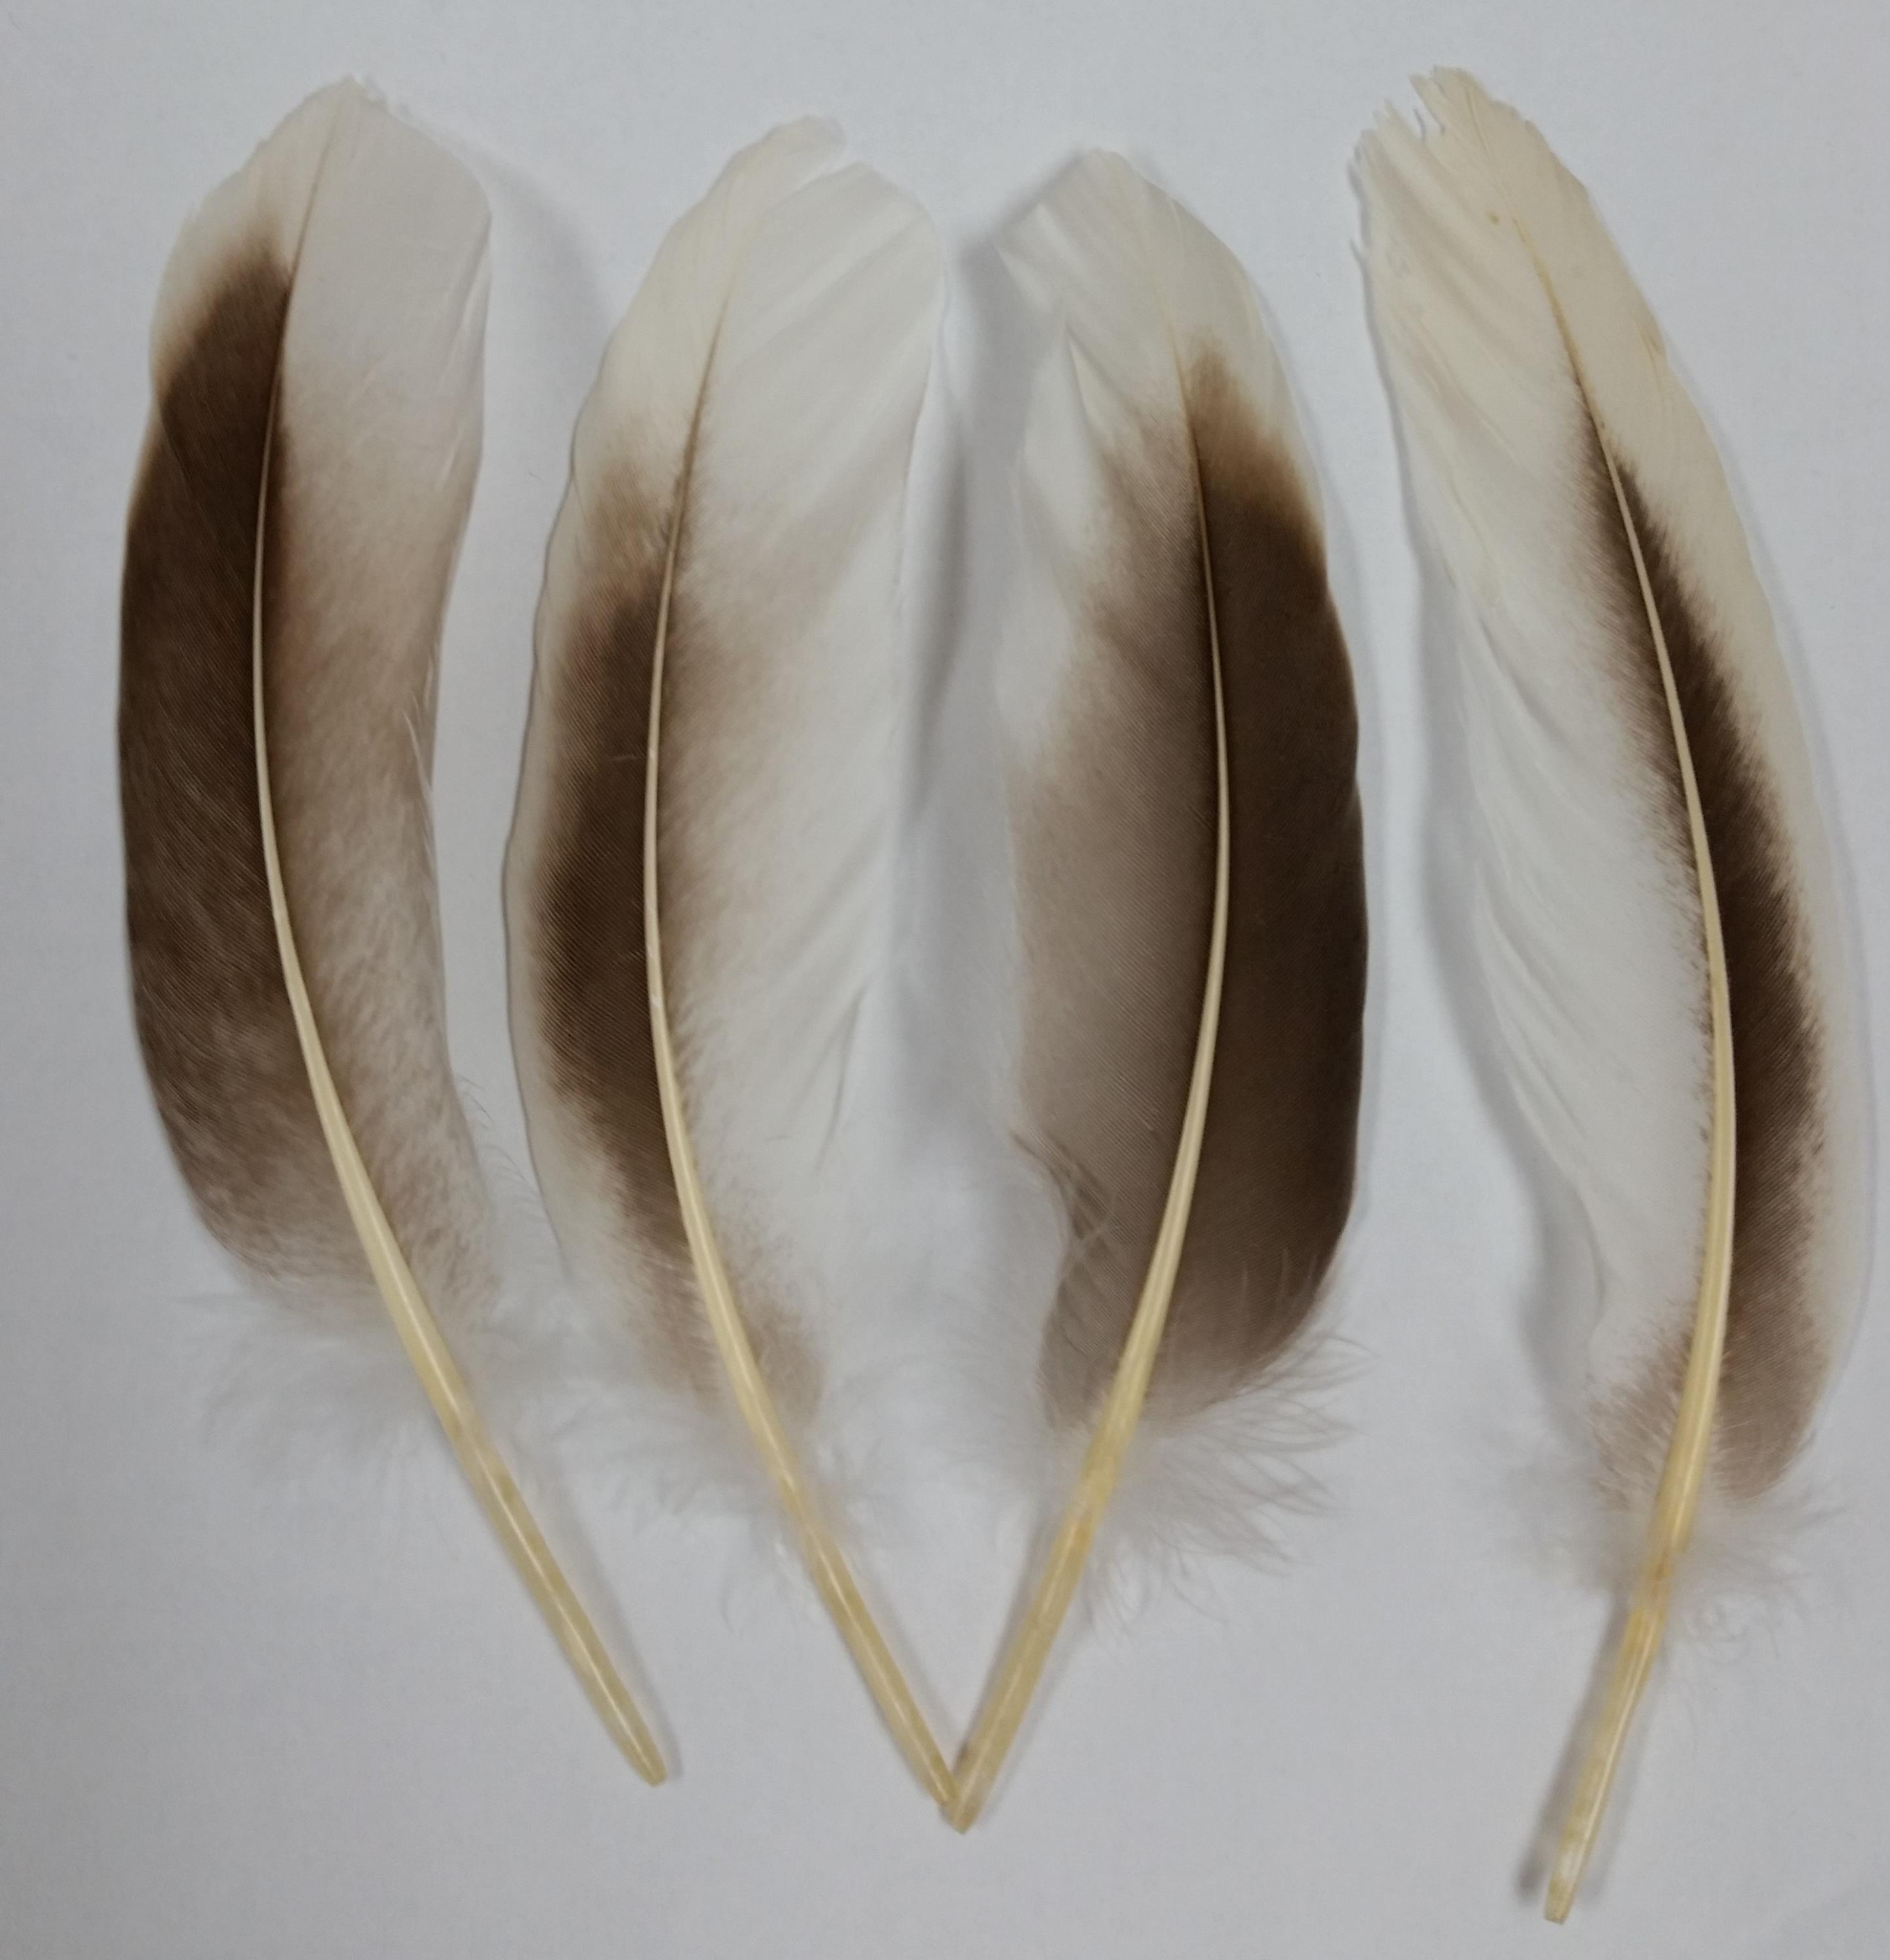 Goose Feathers